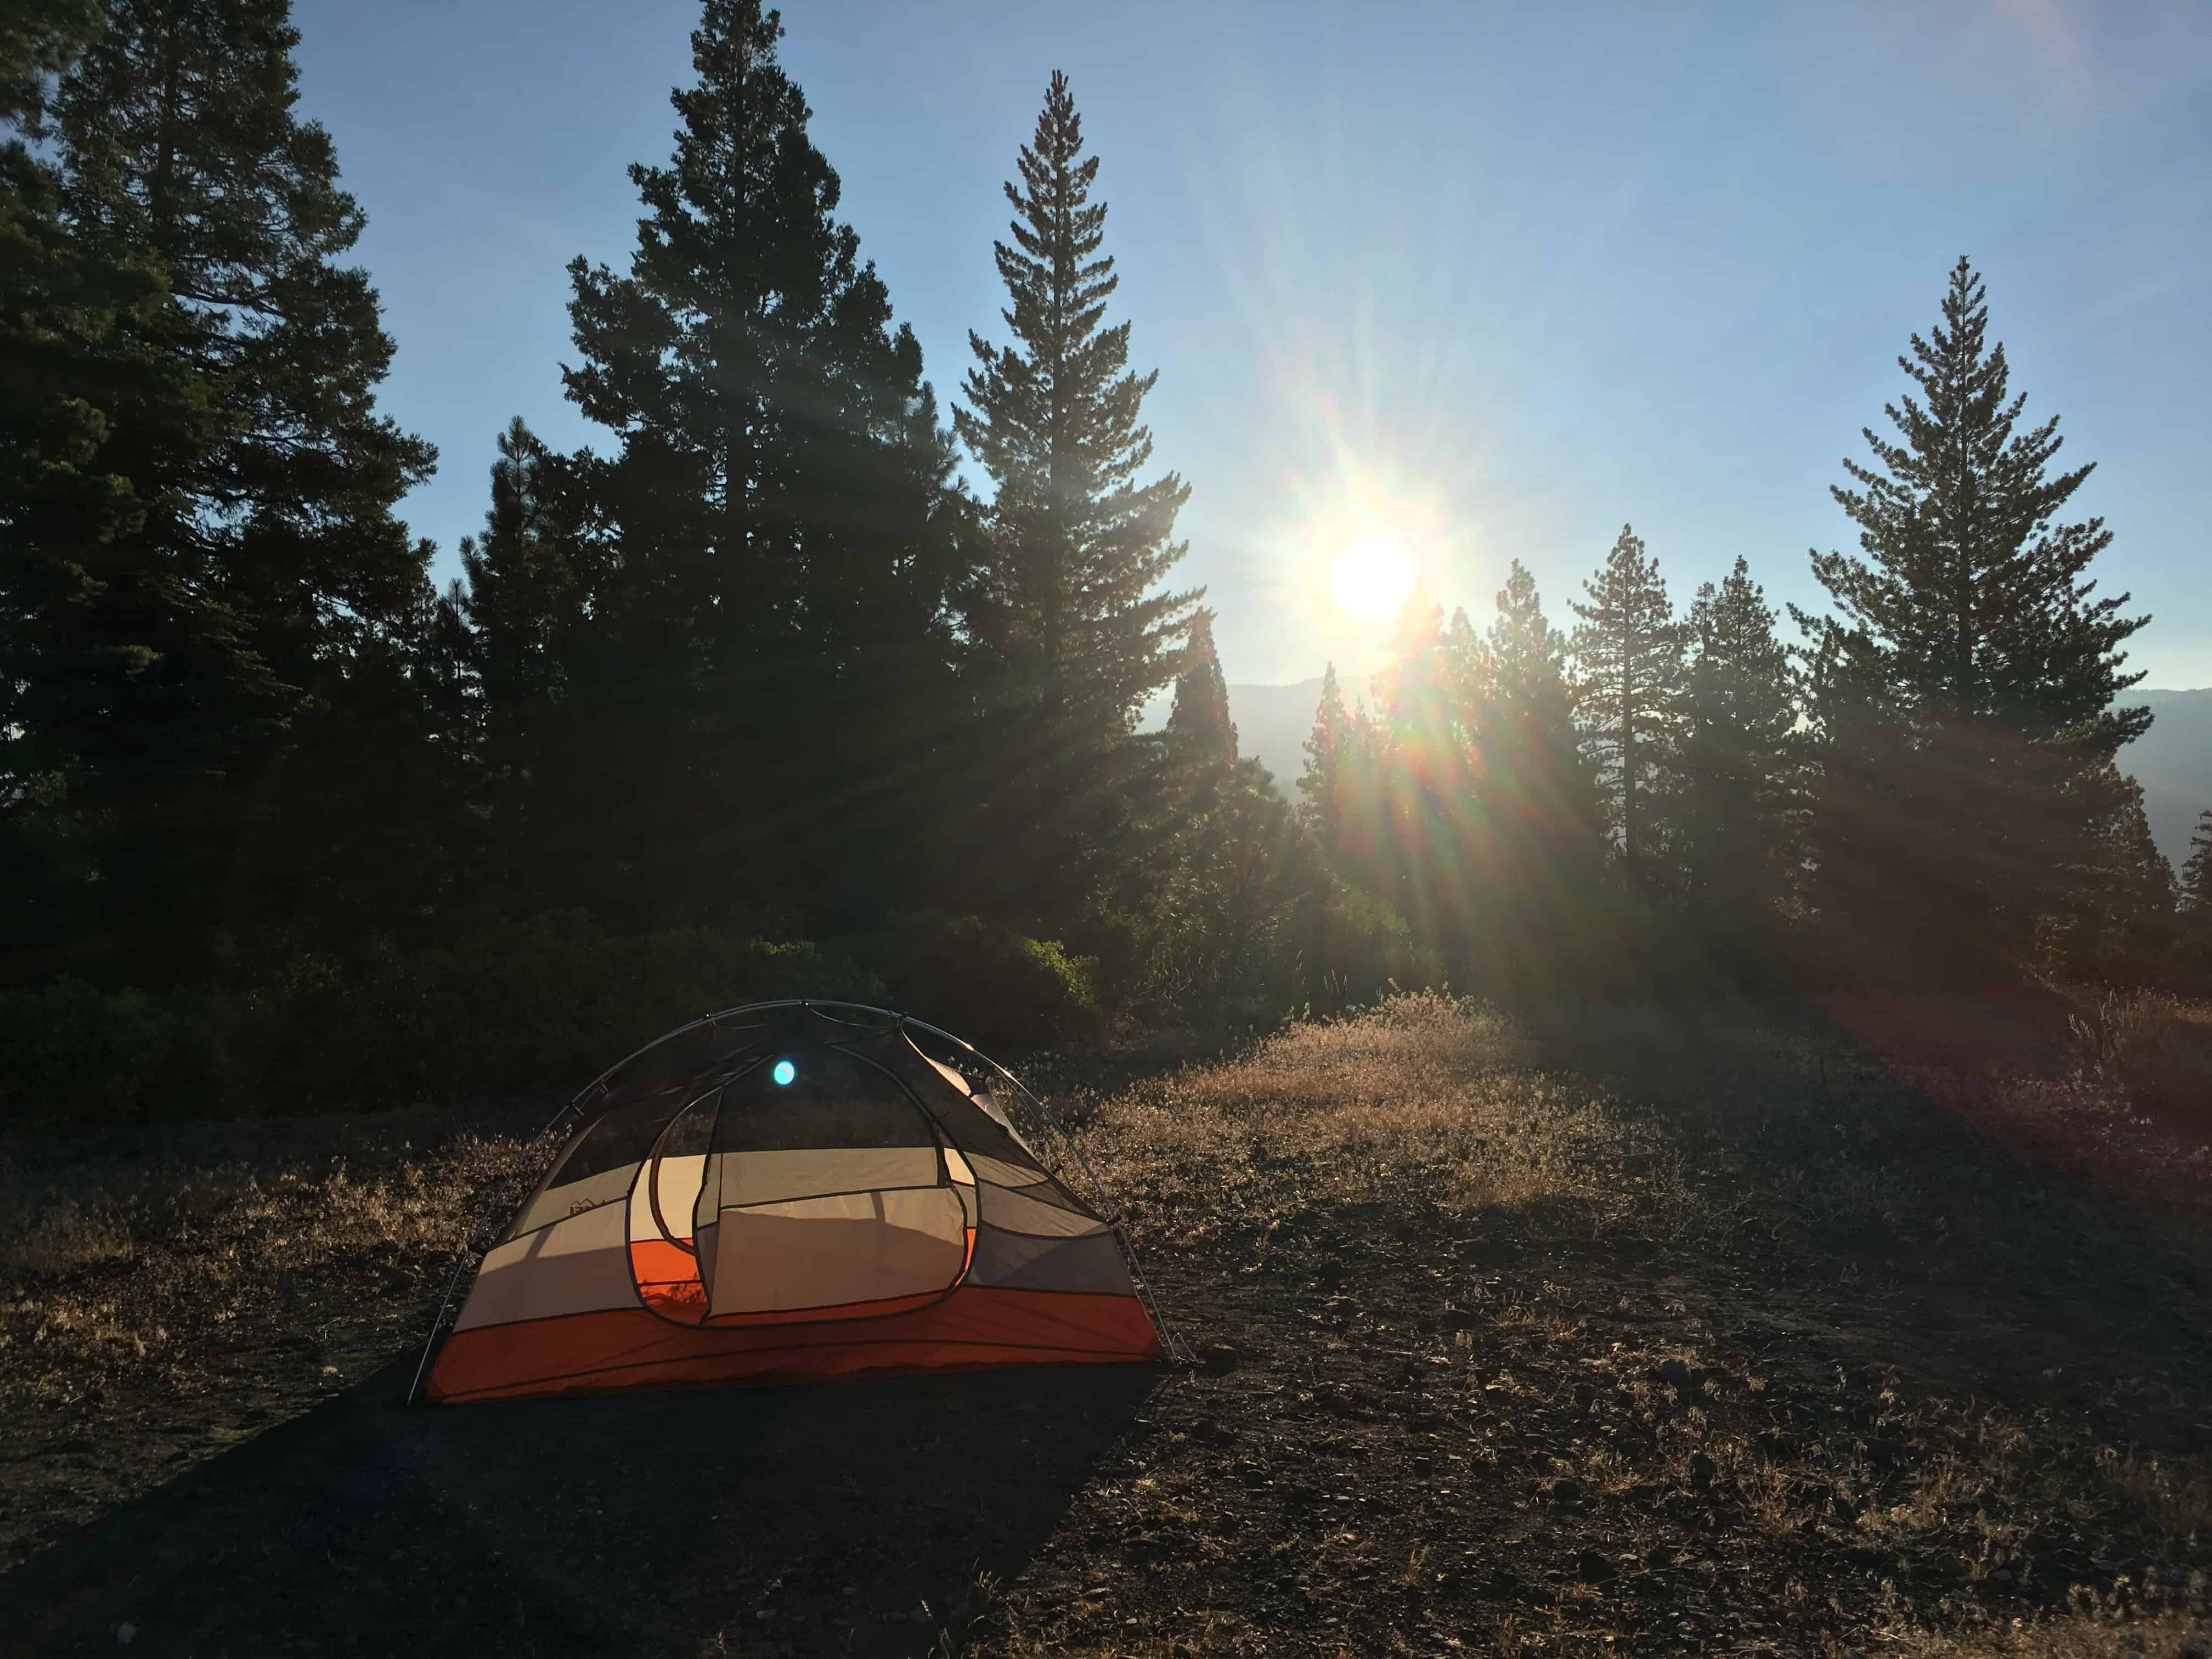 Tent on rocky terrain surrounded by pine trees in the Eastern Sierras near Mammoth, California